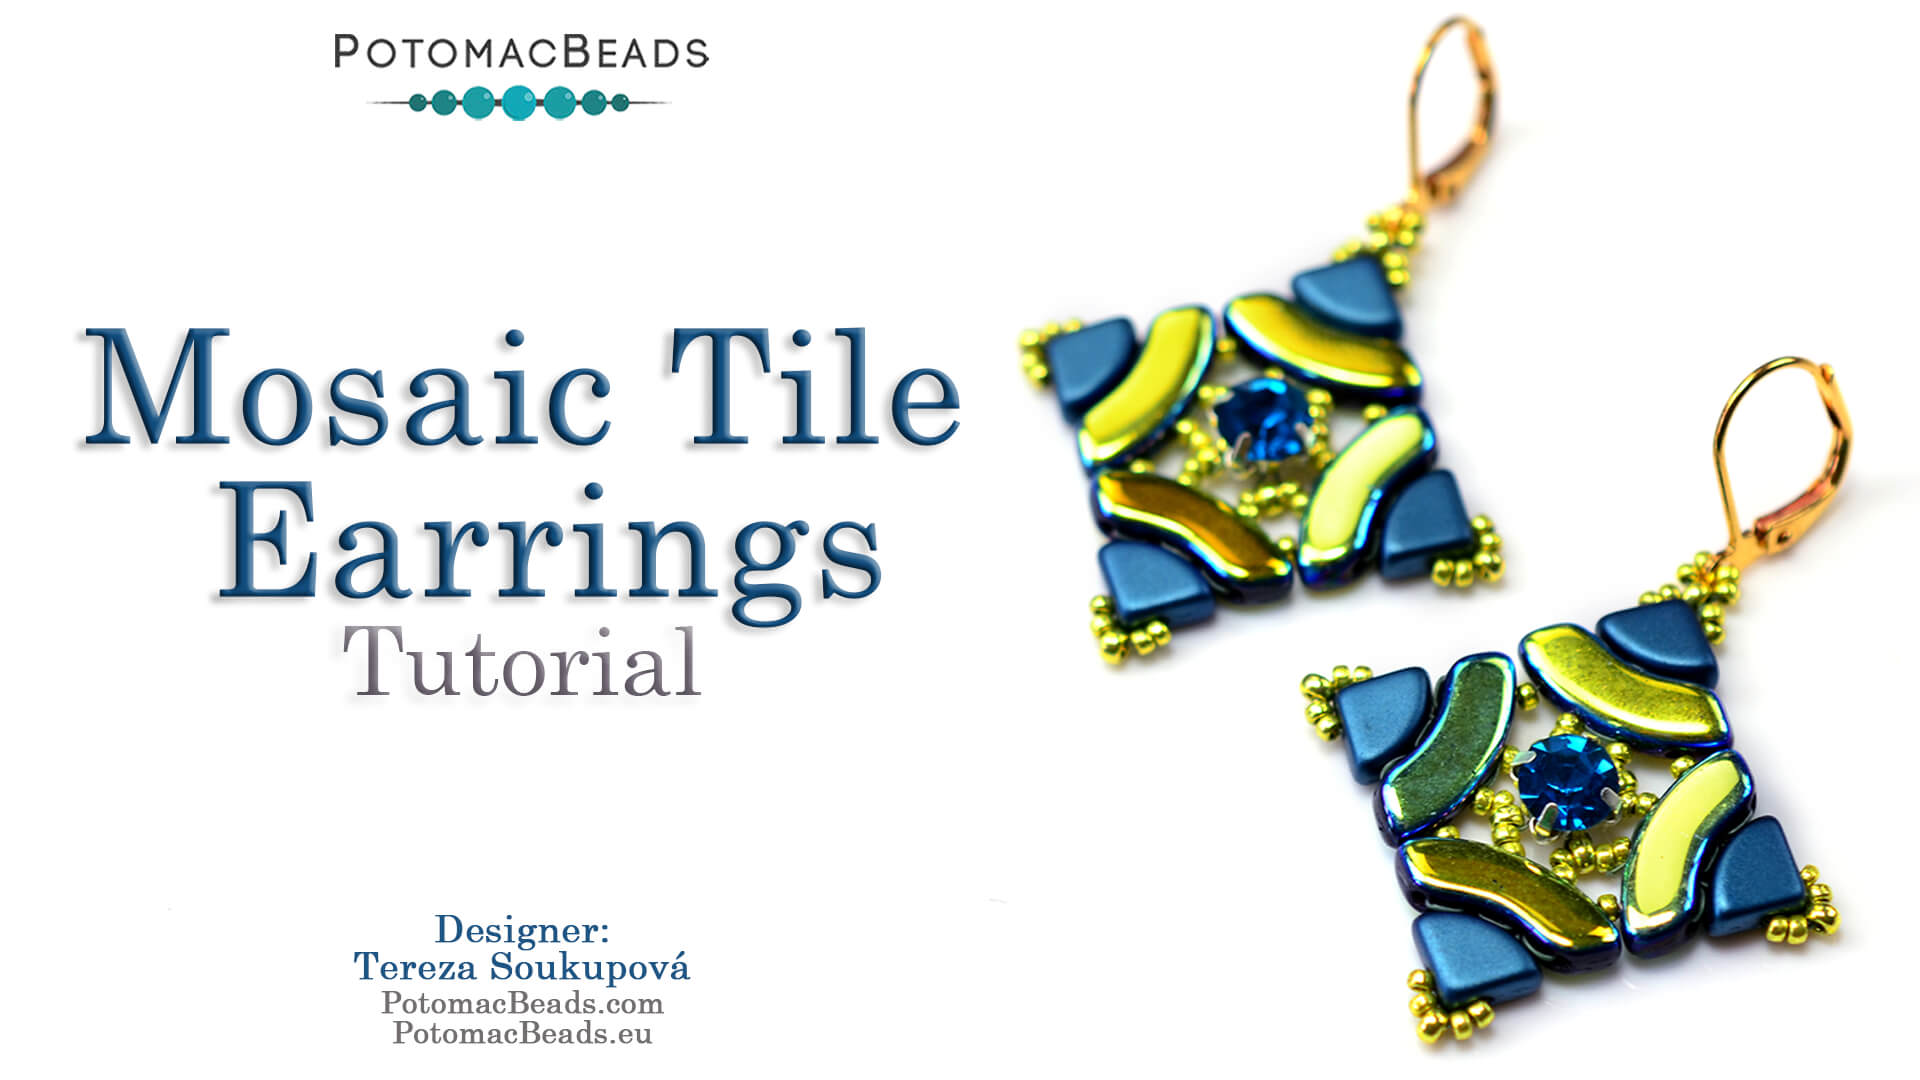 How to Bead Jewelry / Videos Sorted by Beads / QuadBow & PieDuo Bead Videos / Mosaic Tile Earring Tutorial